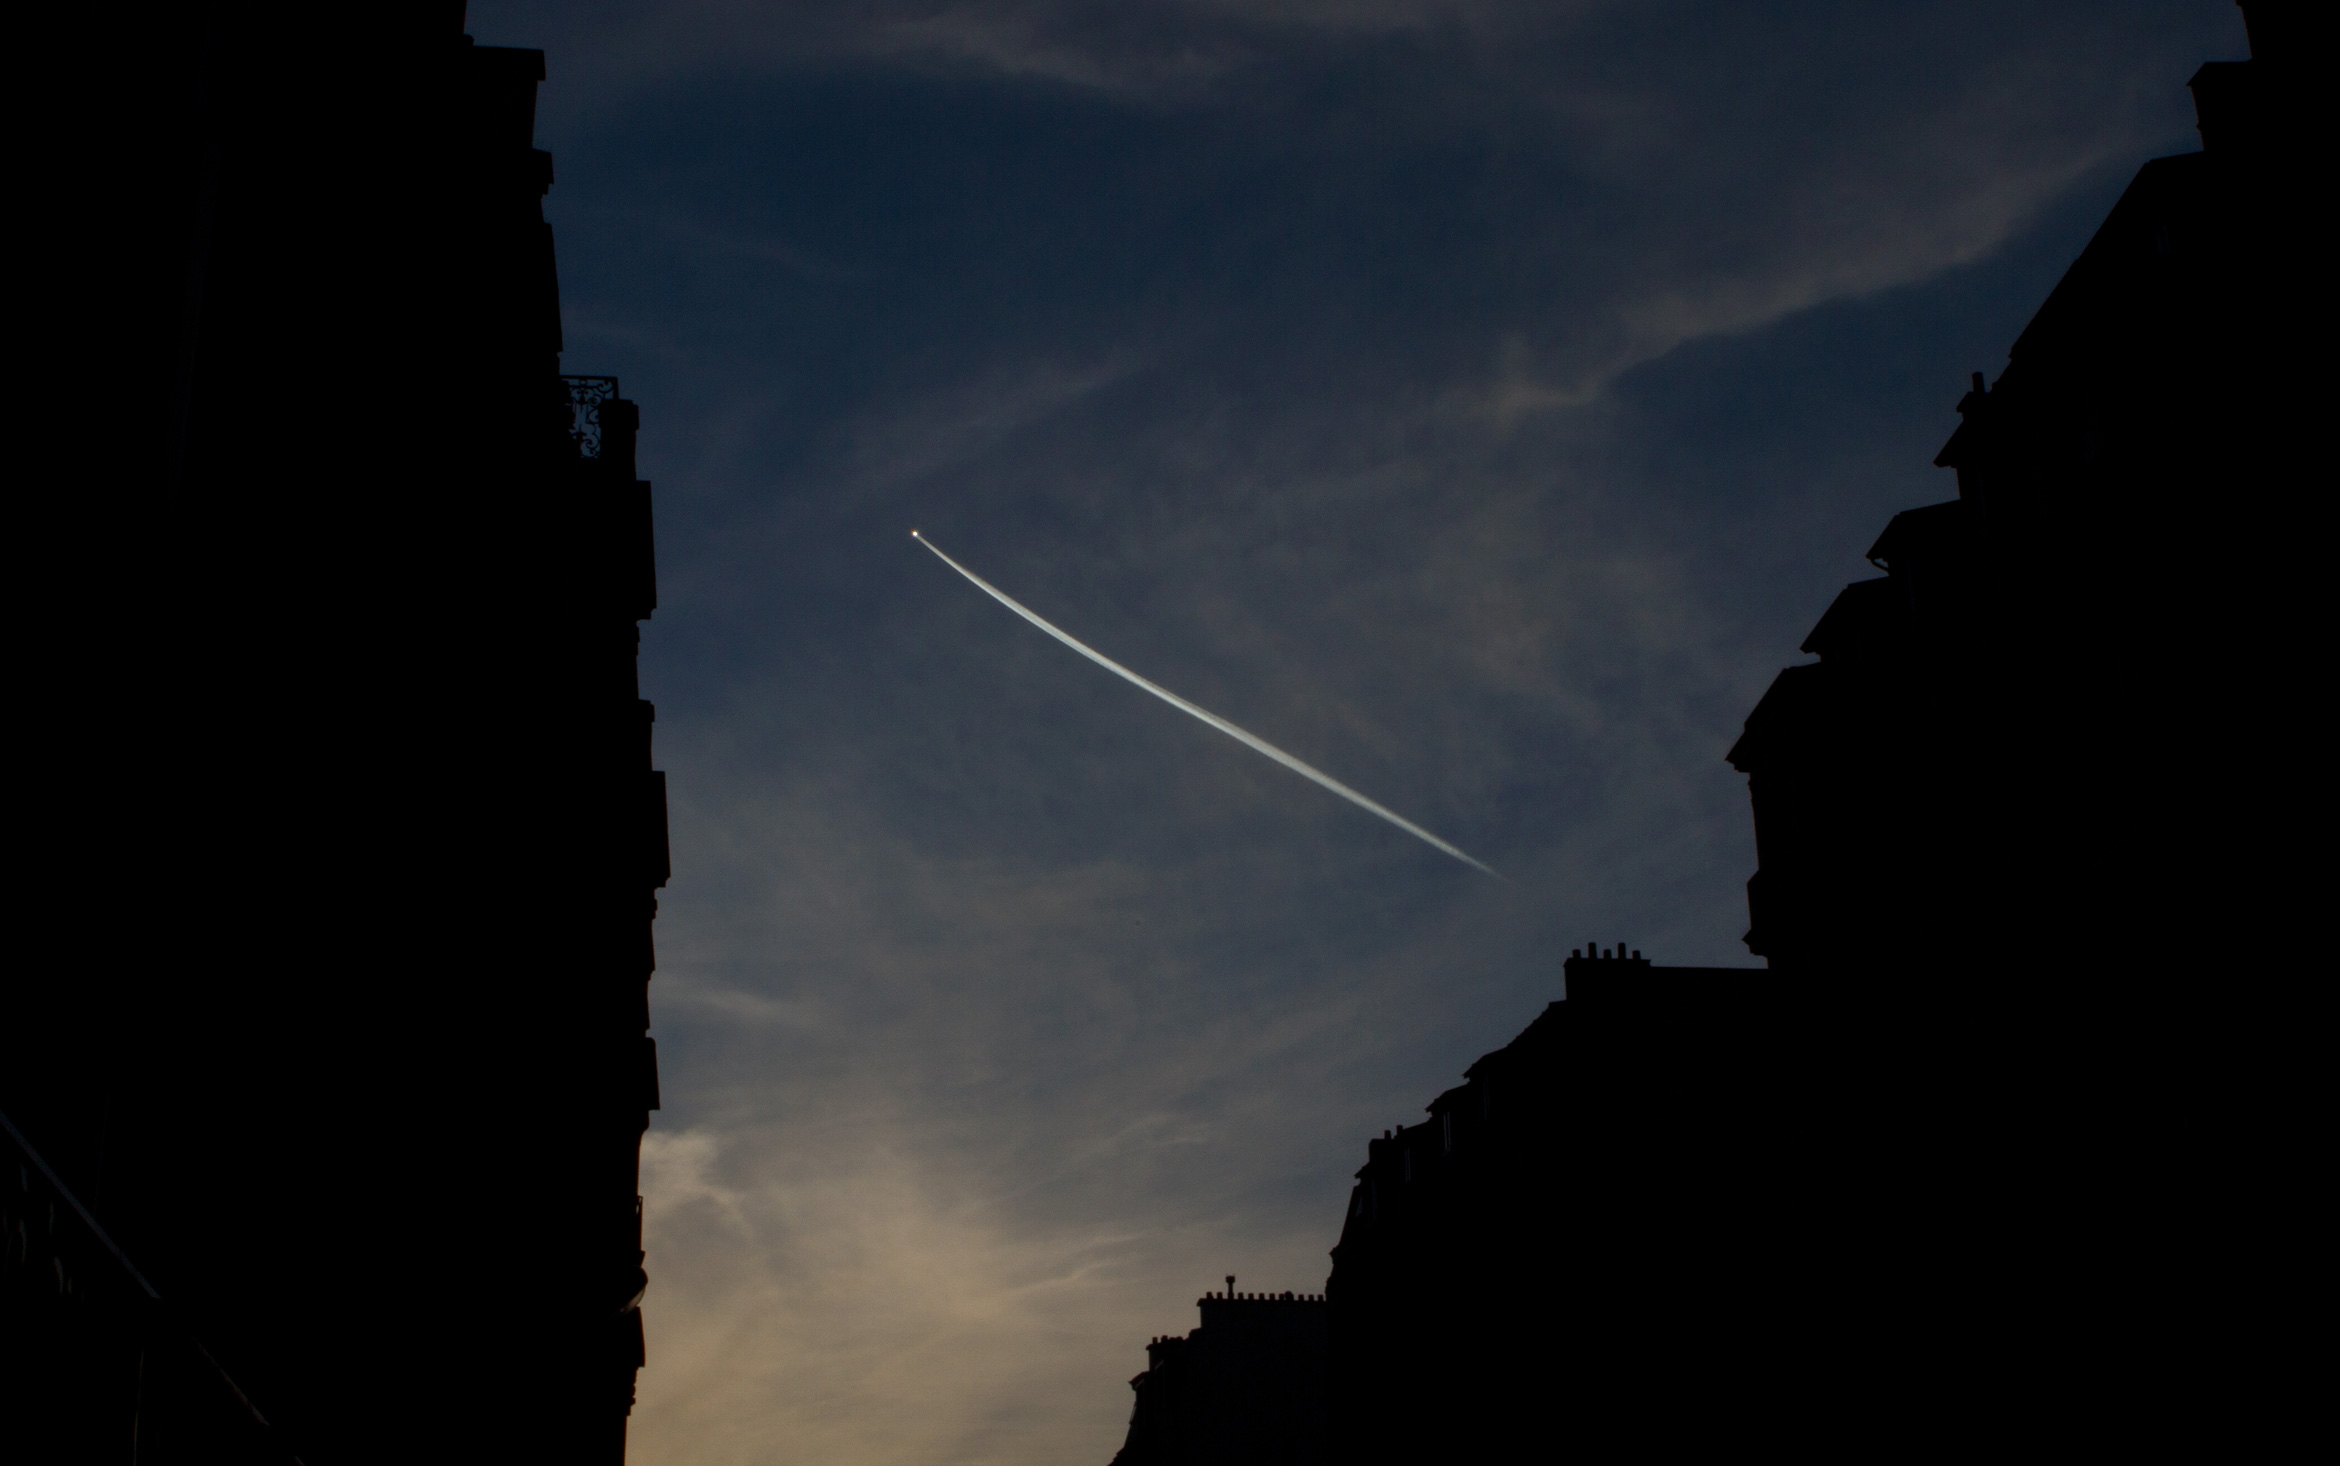 paris-flight-path